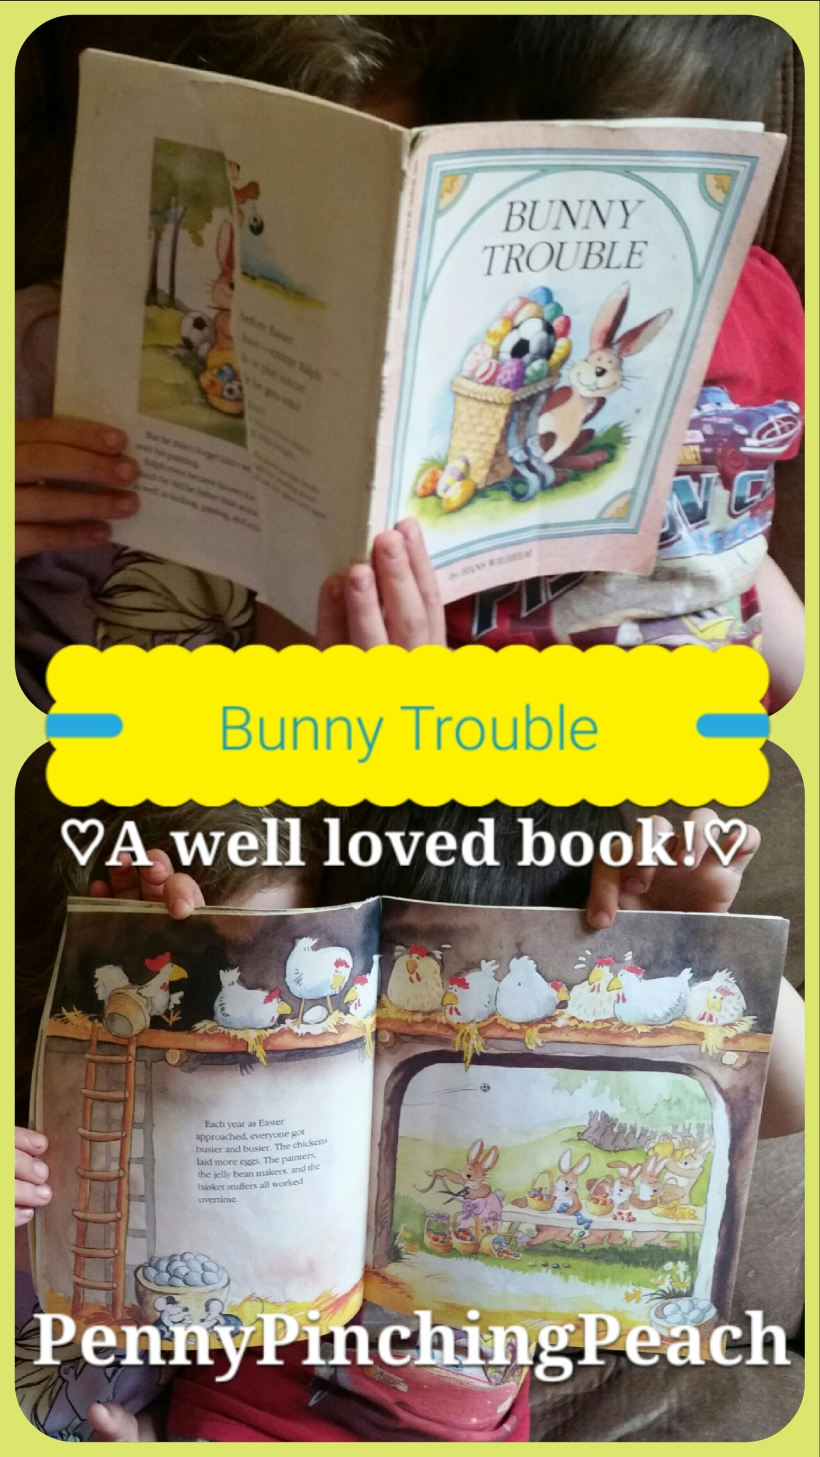 One of my kids' favorite Easter books!